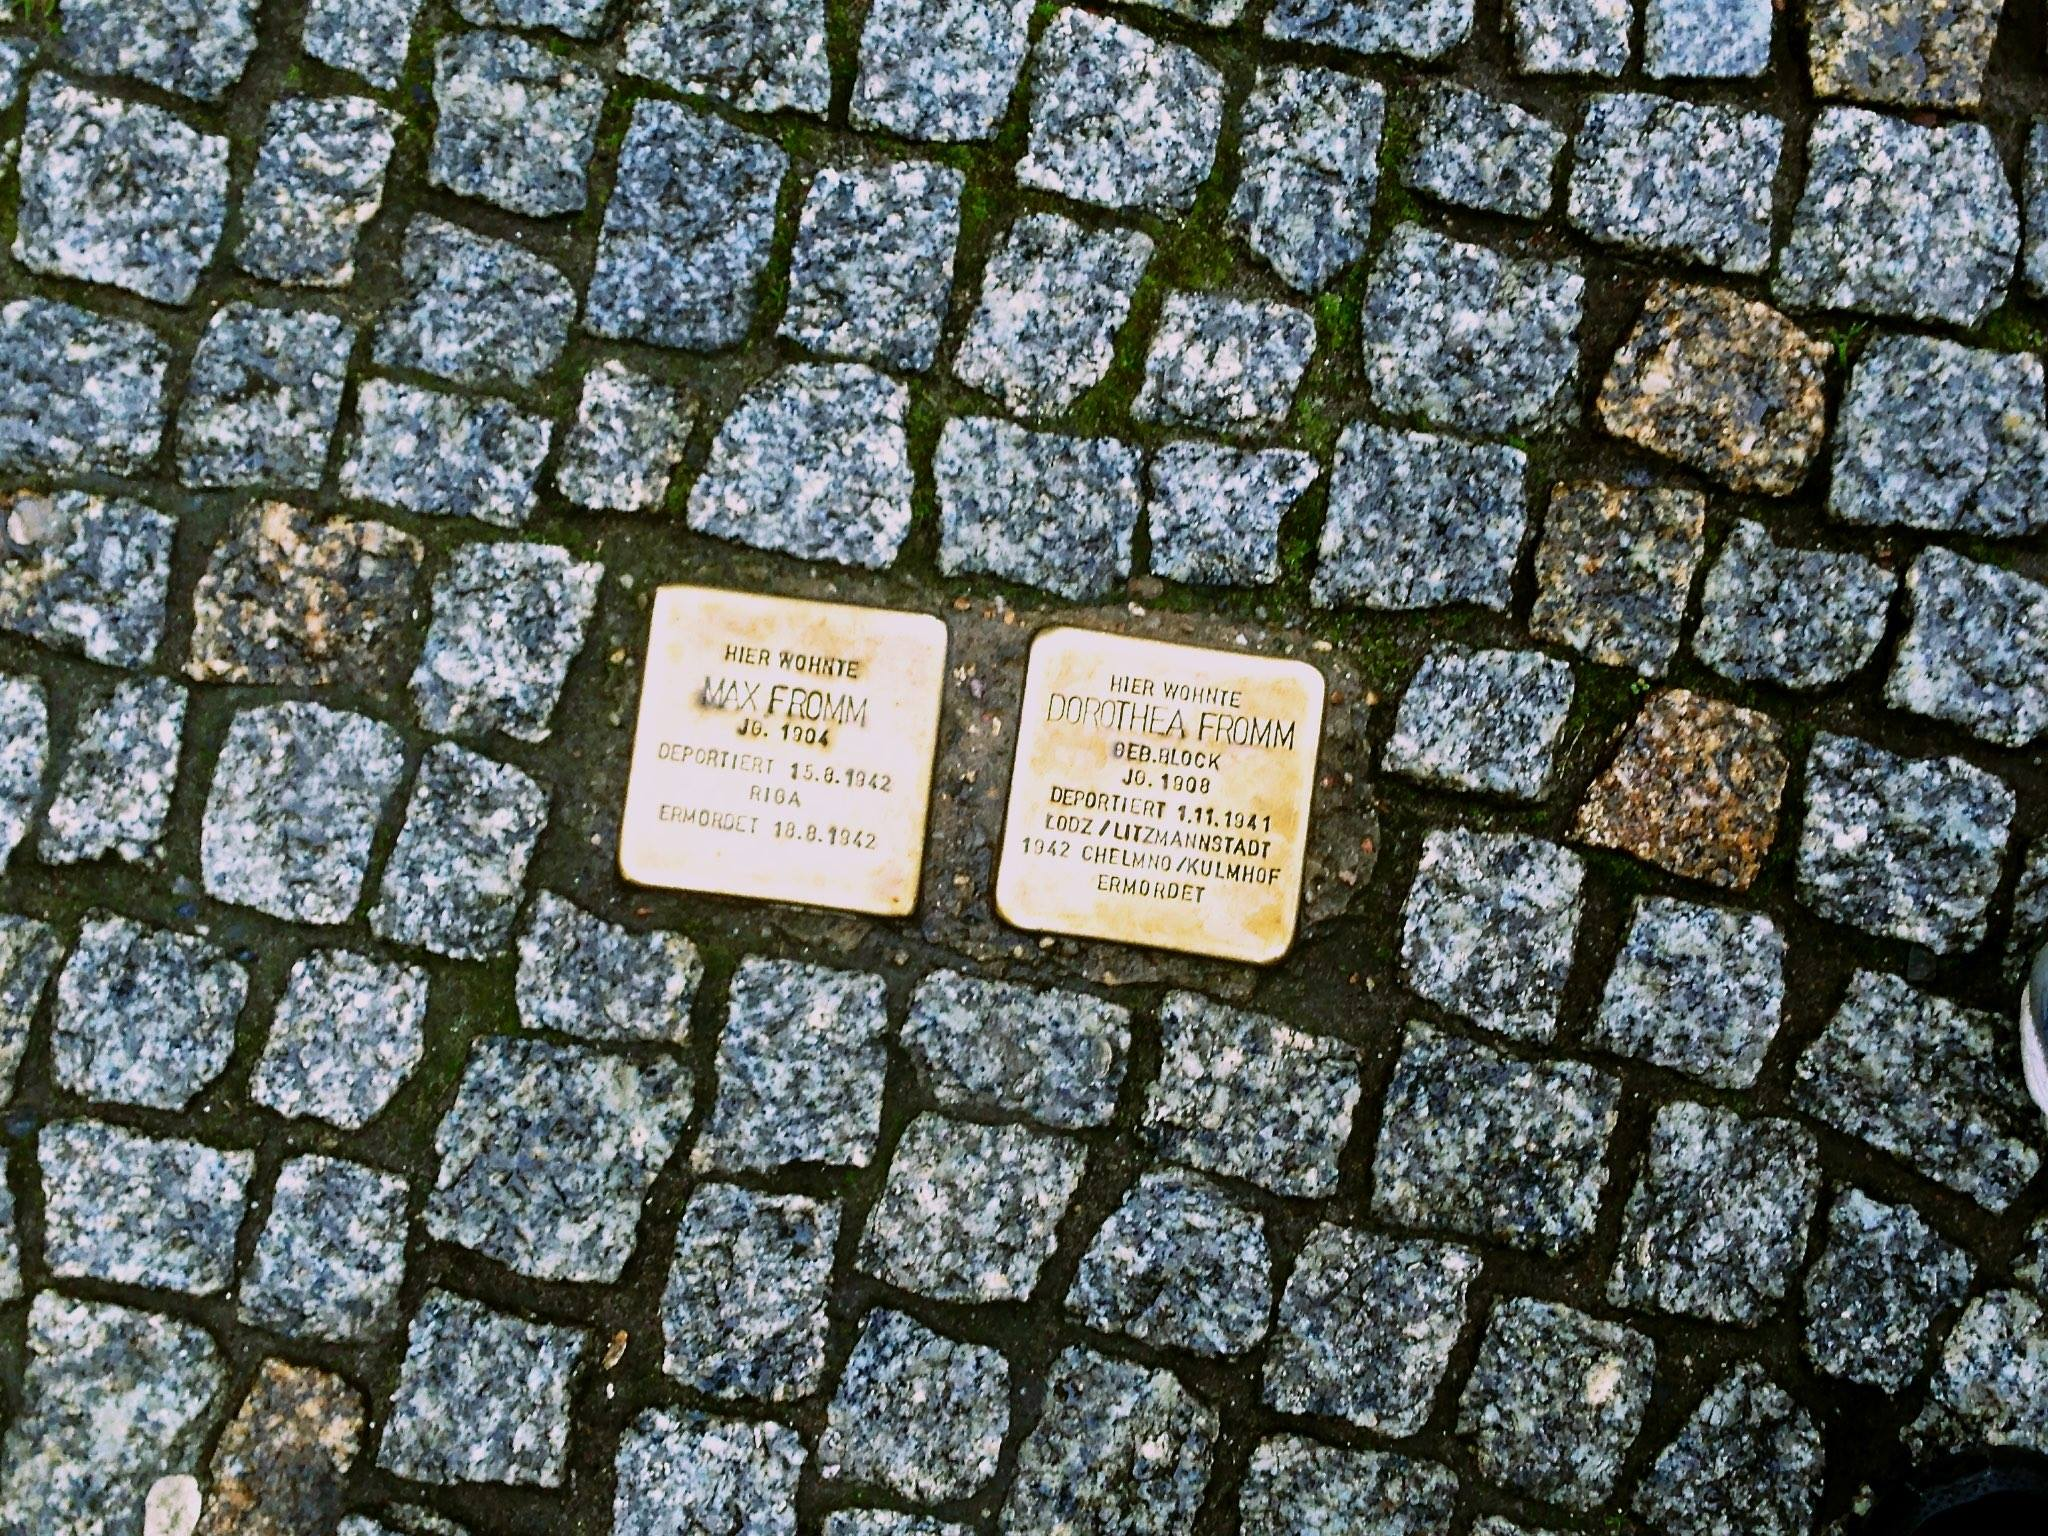 Holocaust Memorial Tiles in Berlin